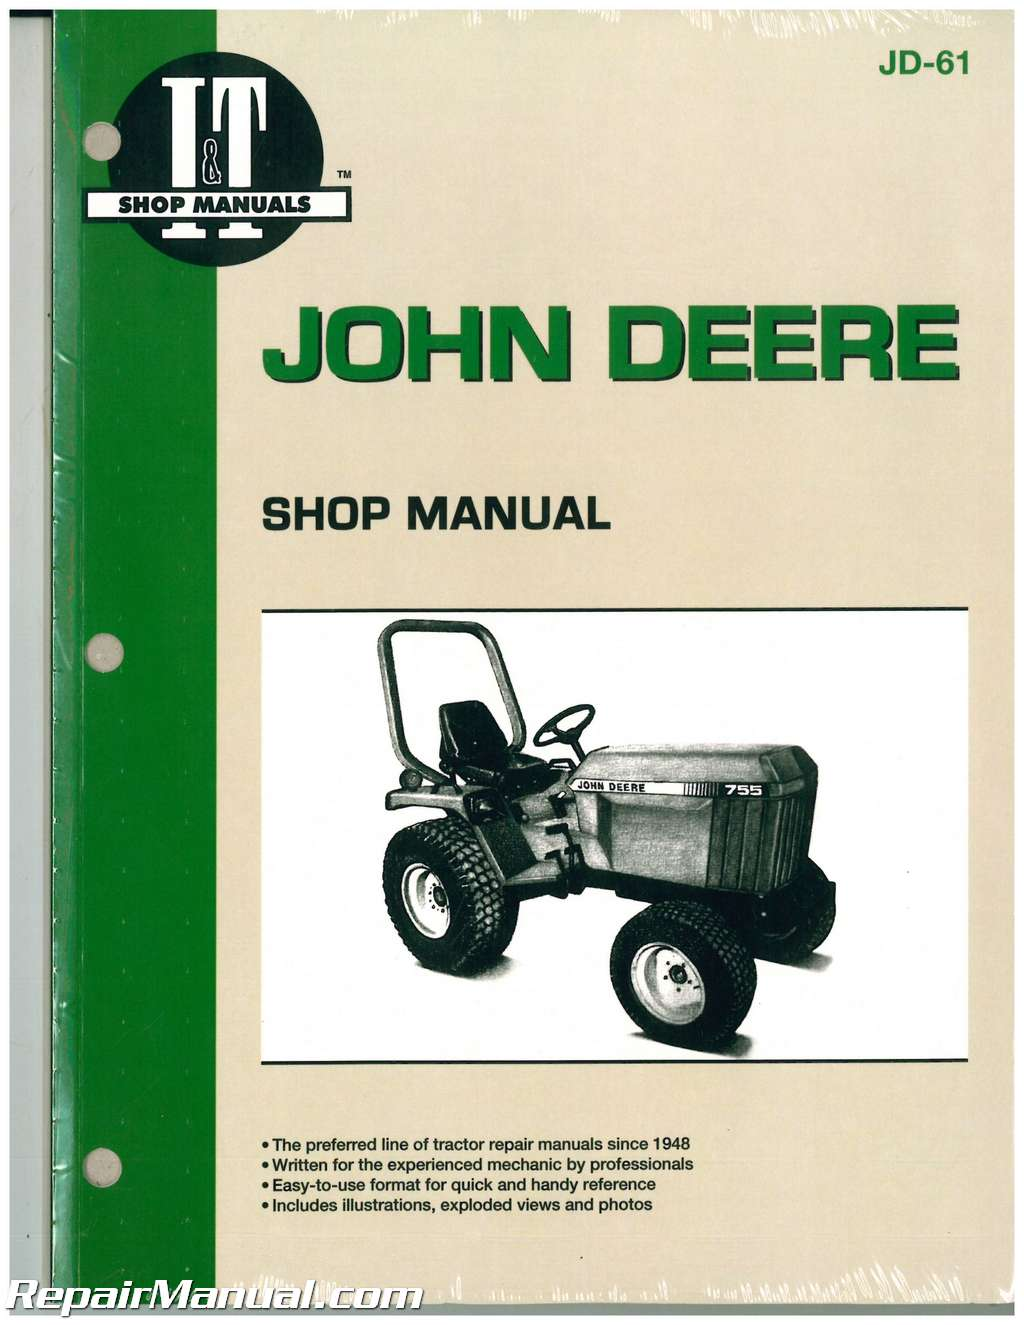 details about john deere 655 755 756 855 856 955 tractor workshop manual jd 61 international tractor wiring diagram international 656 wiring diagram